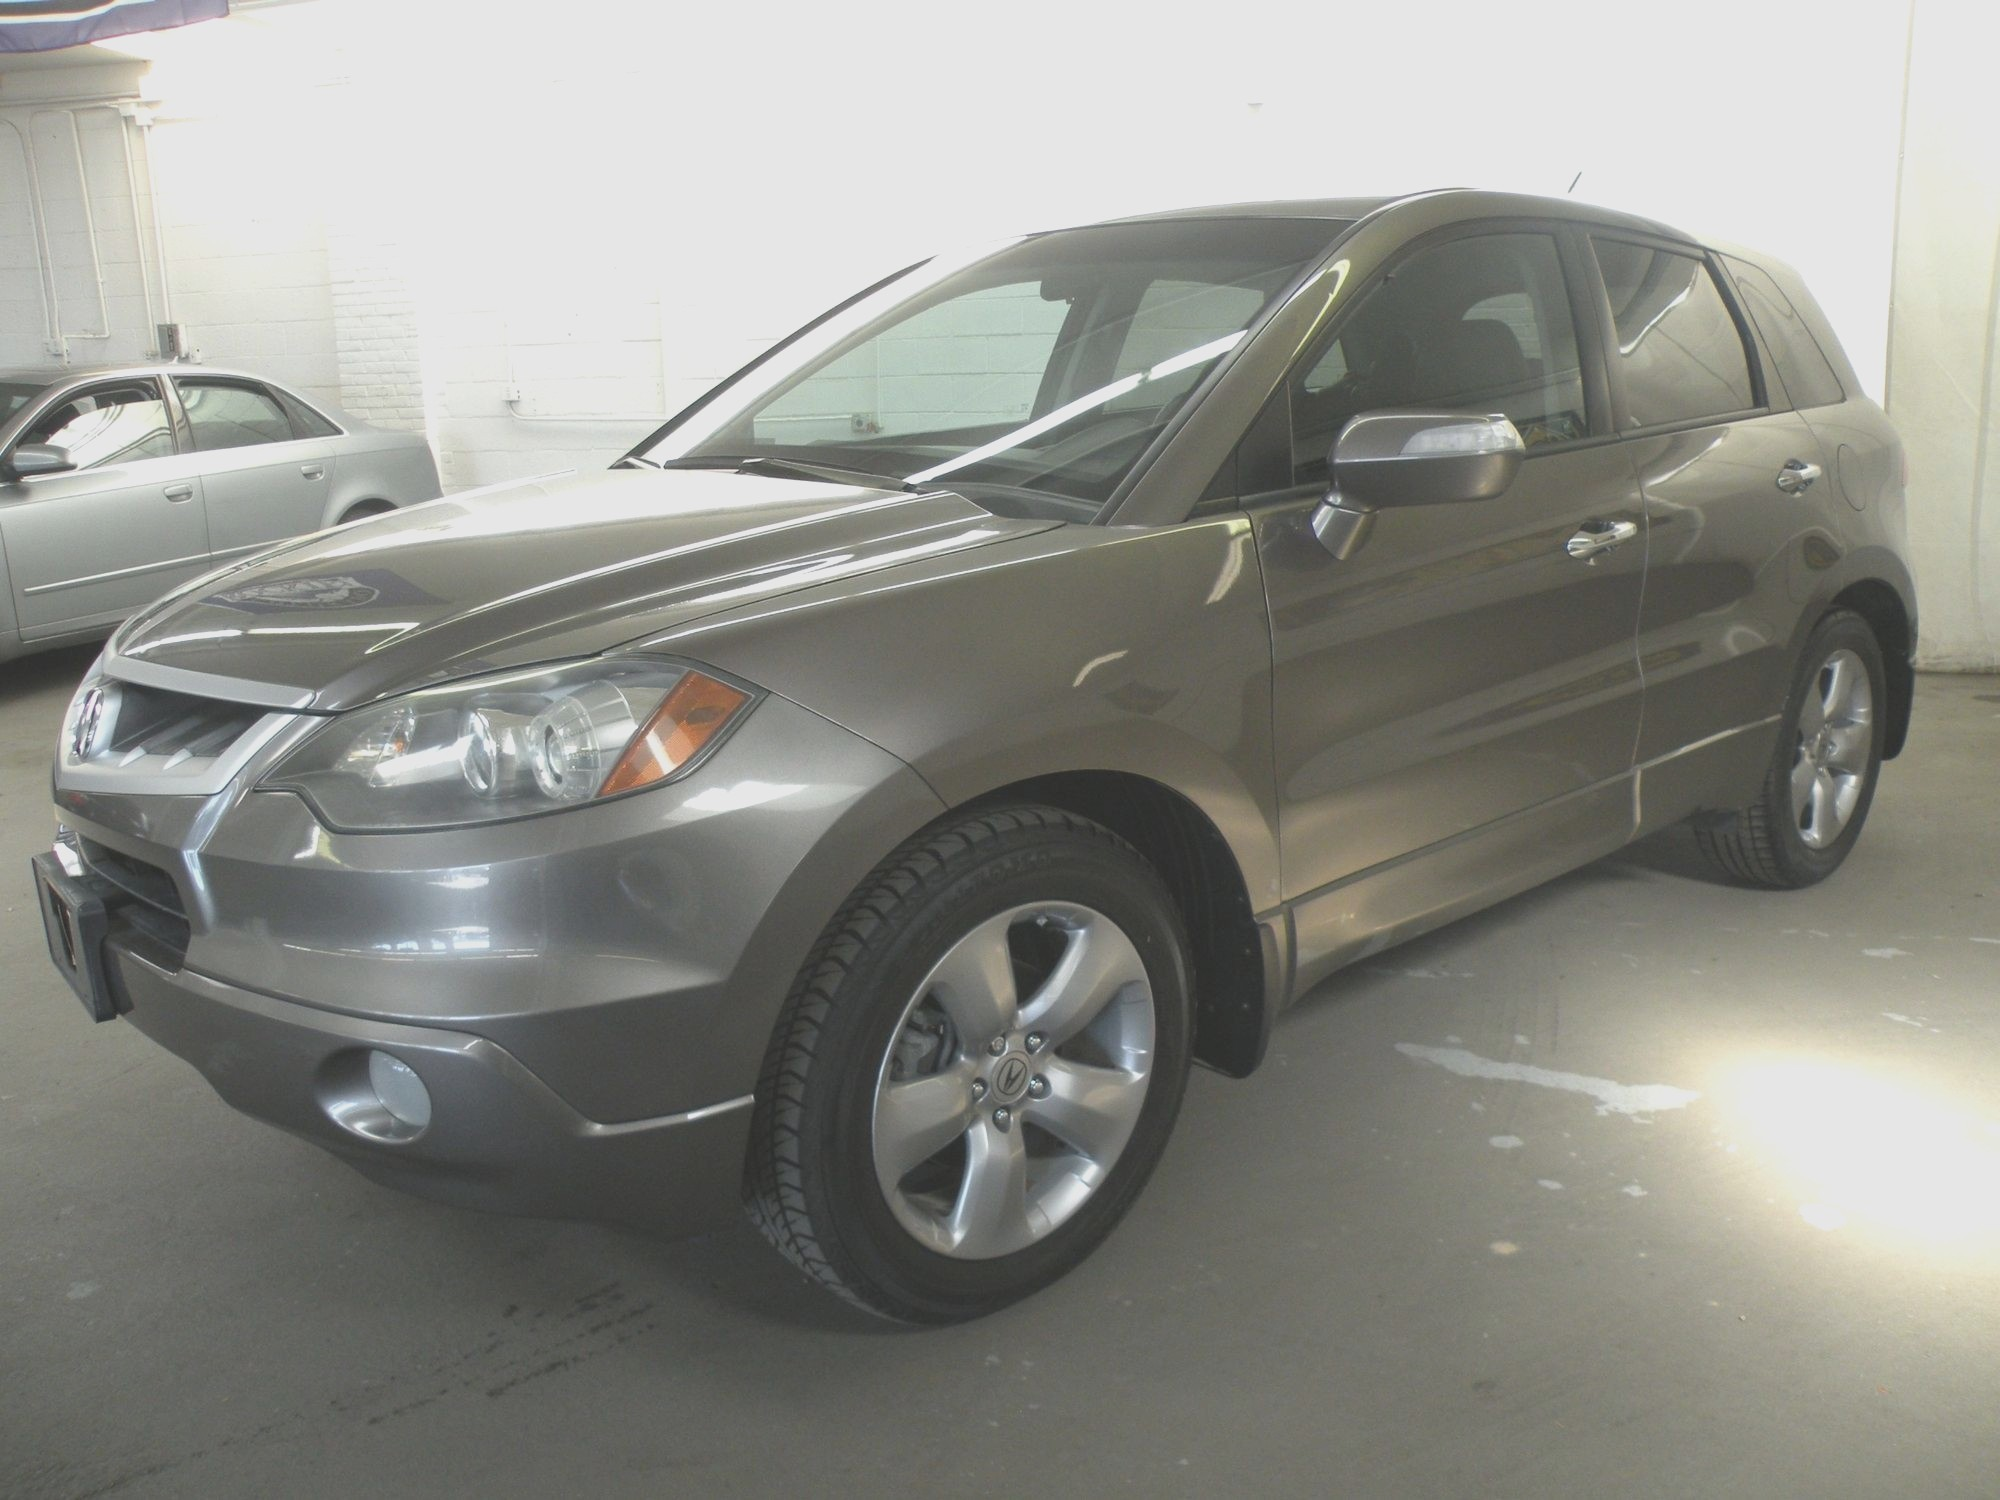 Acura Mdx Awesome Acura Mdx Fresh 2008 Acura Mdx Unique Bmw X3 3 0d 2008 Technical